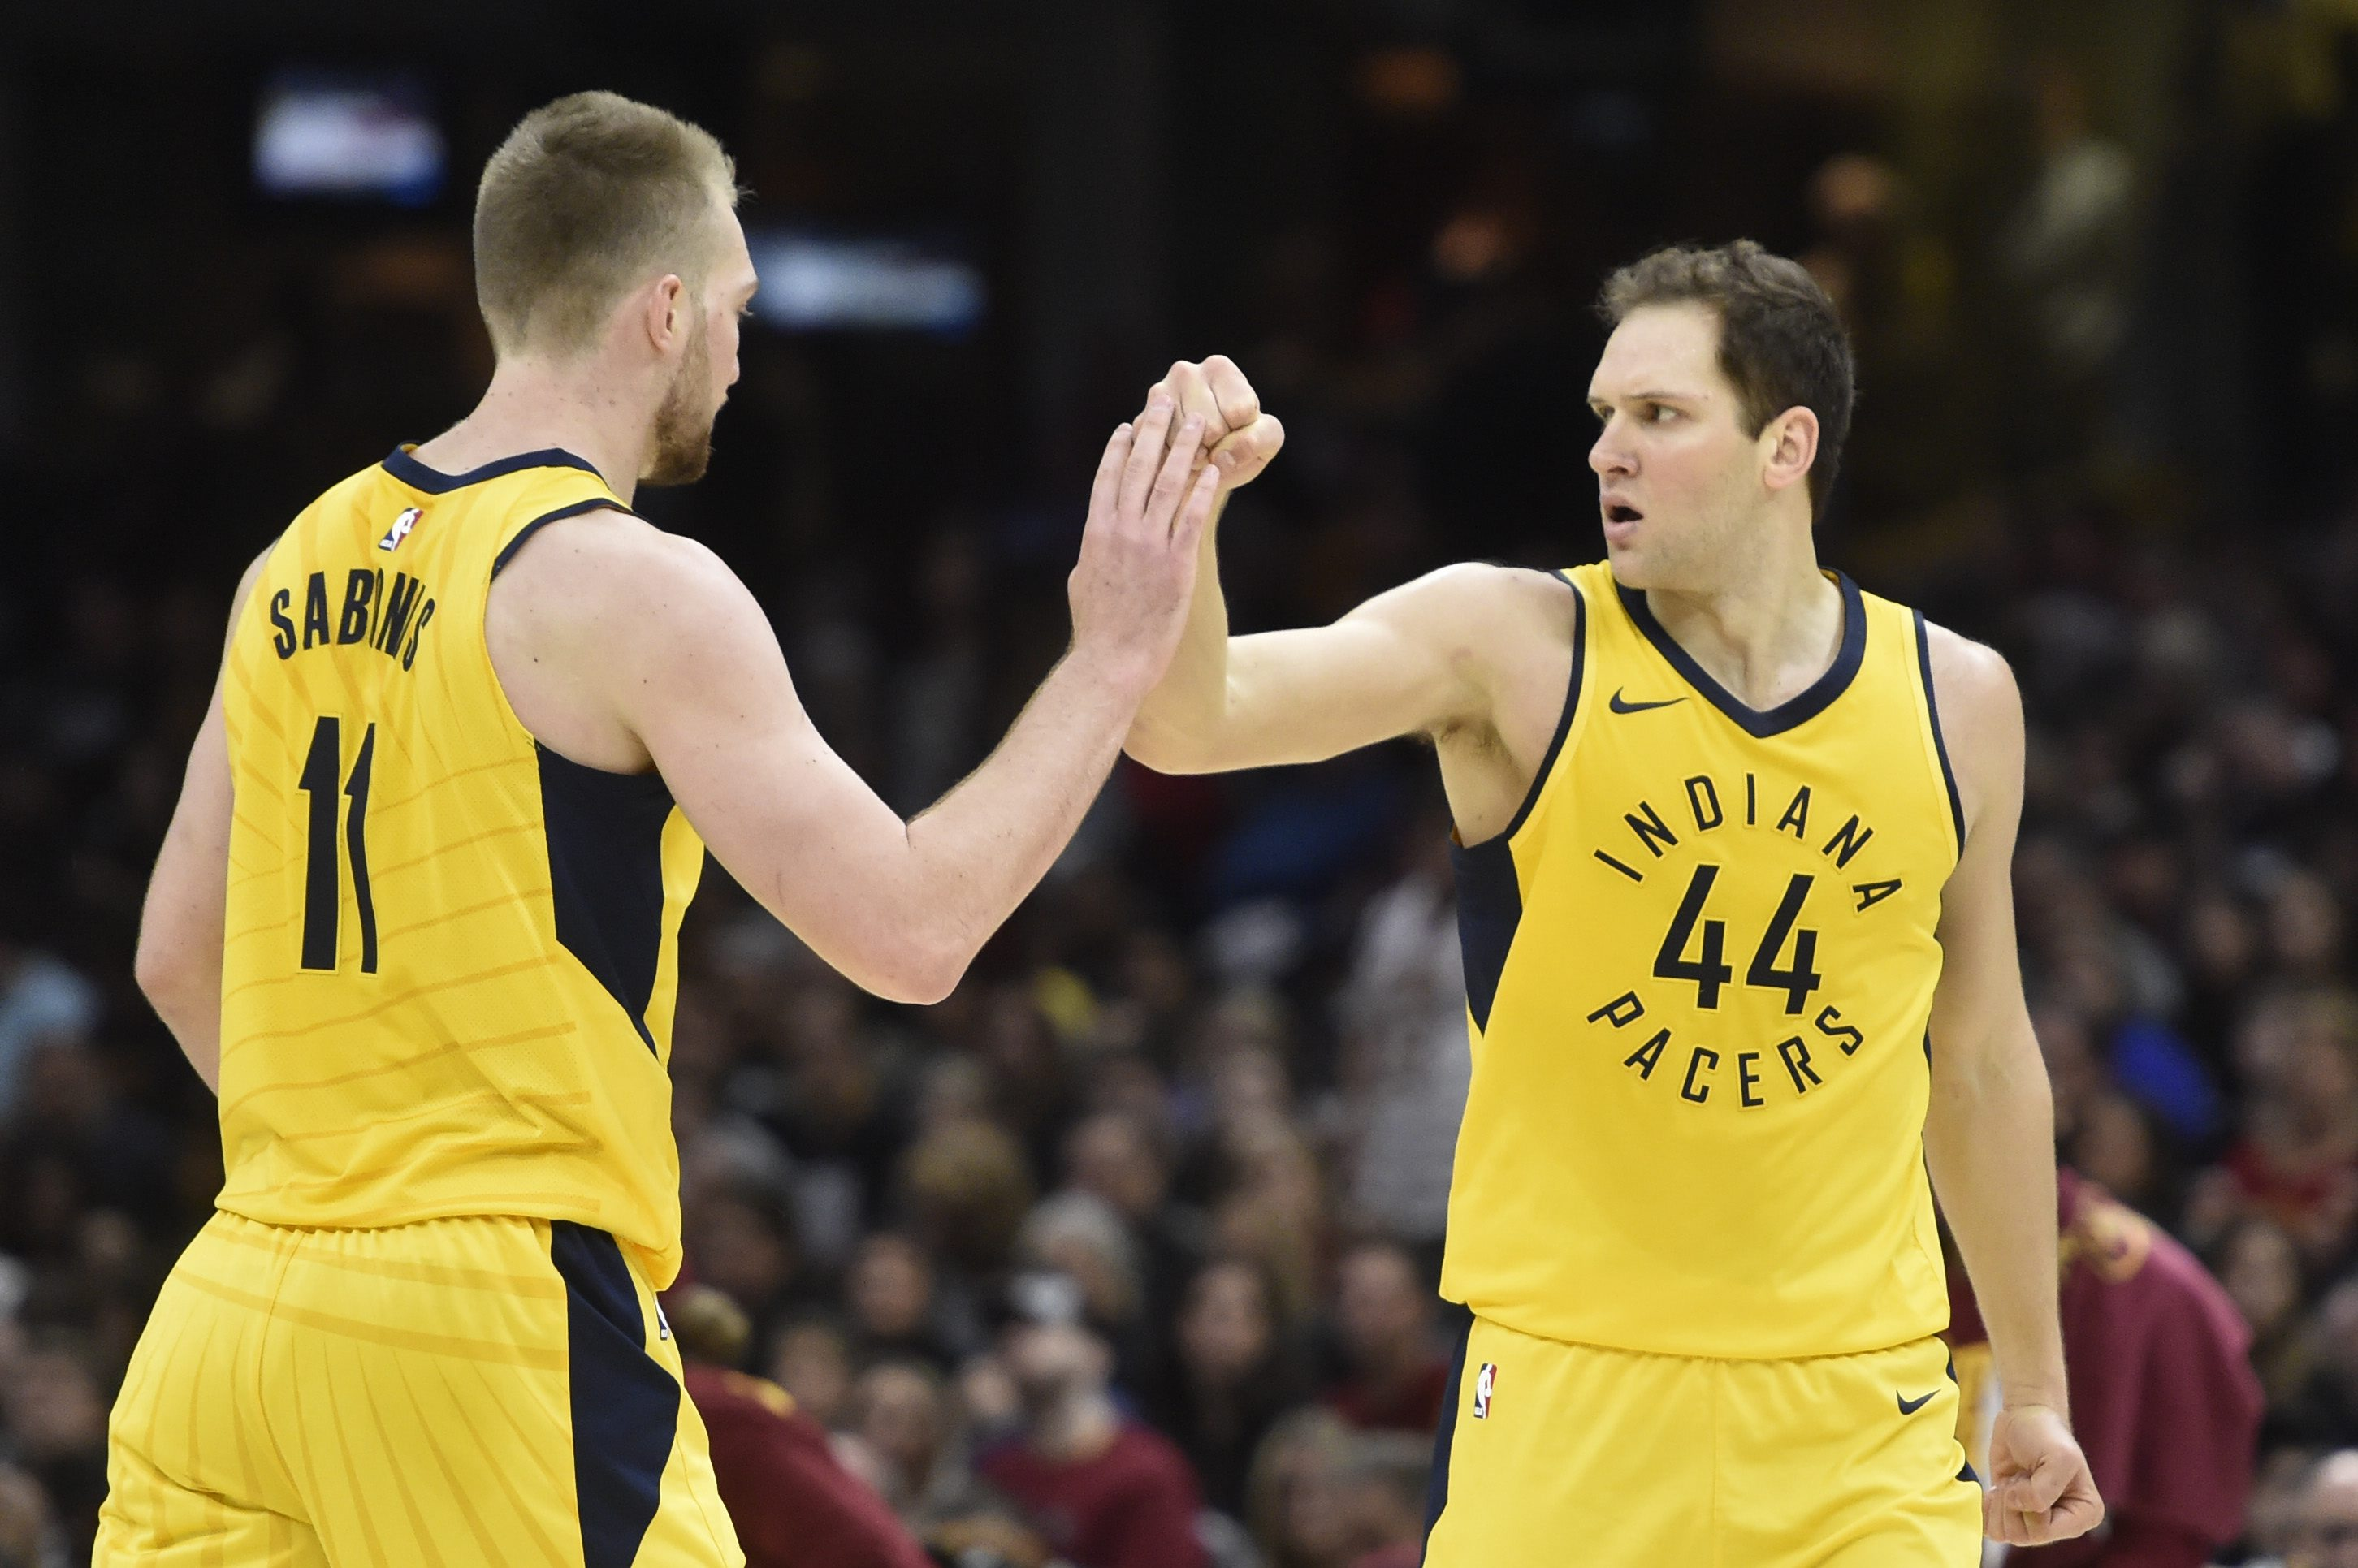 Apr 15, 2018; Cleveland, OH, USA; Indiana Pacers forward Bojan Bogdanovic (44) and center Domantas Sabonis (11) celebrate in the second quarter against the Cleveland Cavaliers in game one of the first round of the 2018 NBA Playoffs at Quicken Loans Arena. Mandatory Credit: David Richard-USA TODAY Sports